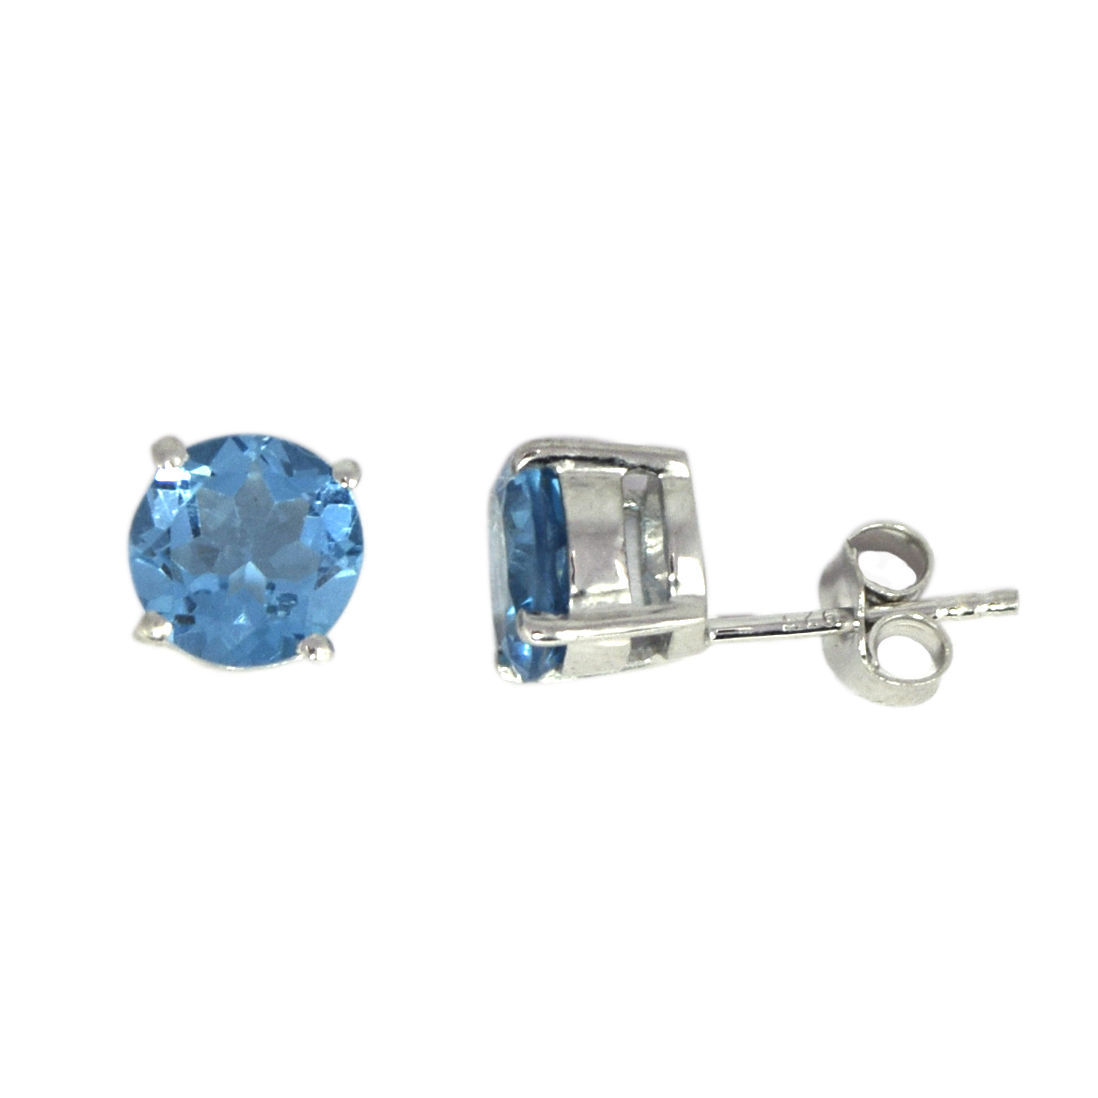 Shine Jewel 925 Sterling Silver Round Blue Topaz Jewelry Stud Earring SHER140